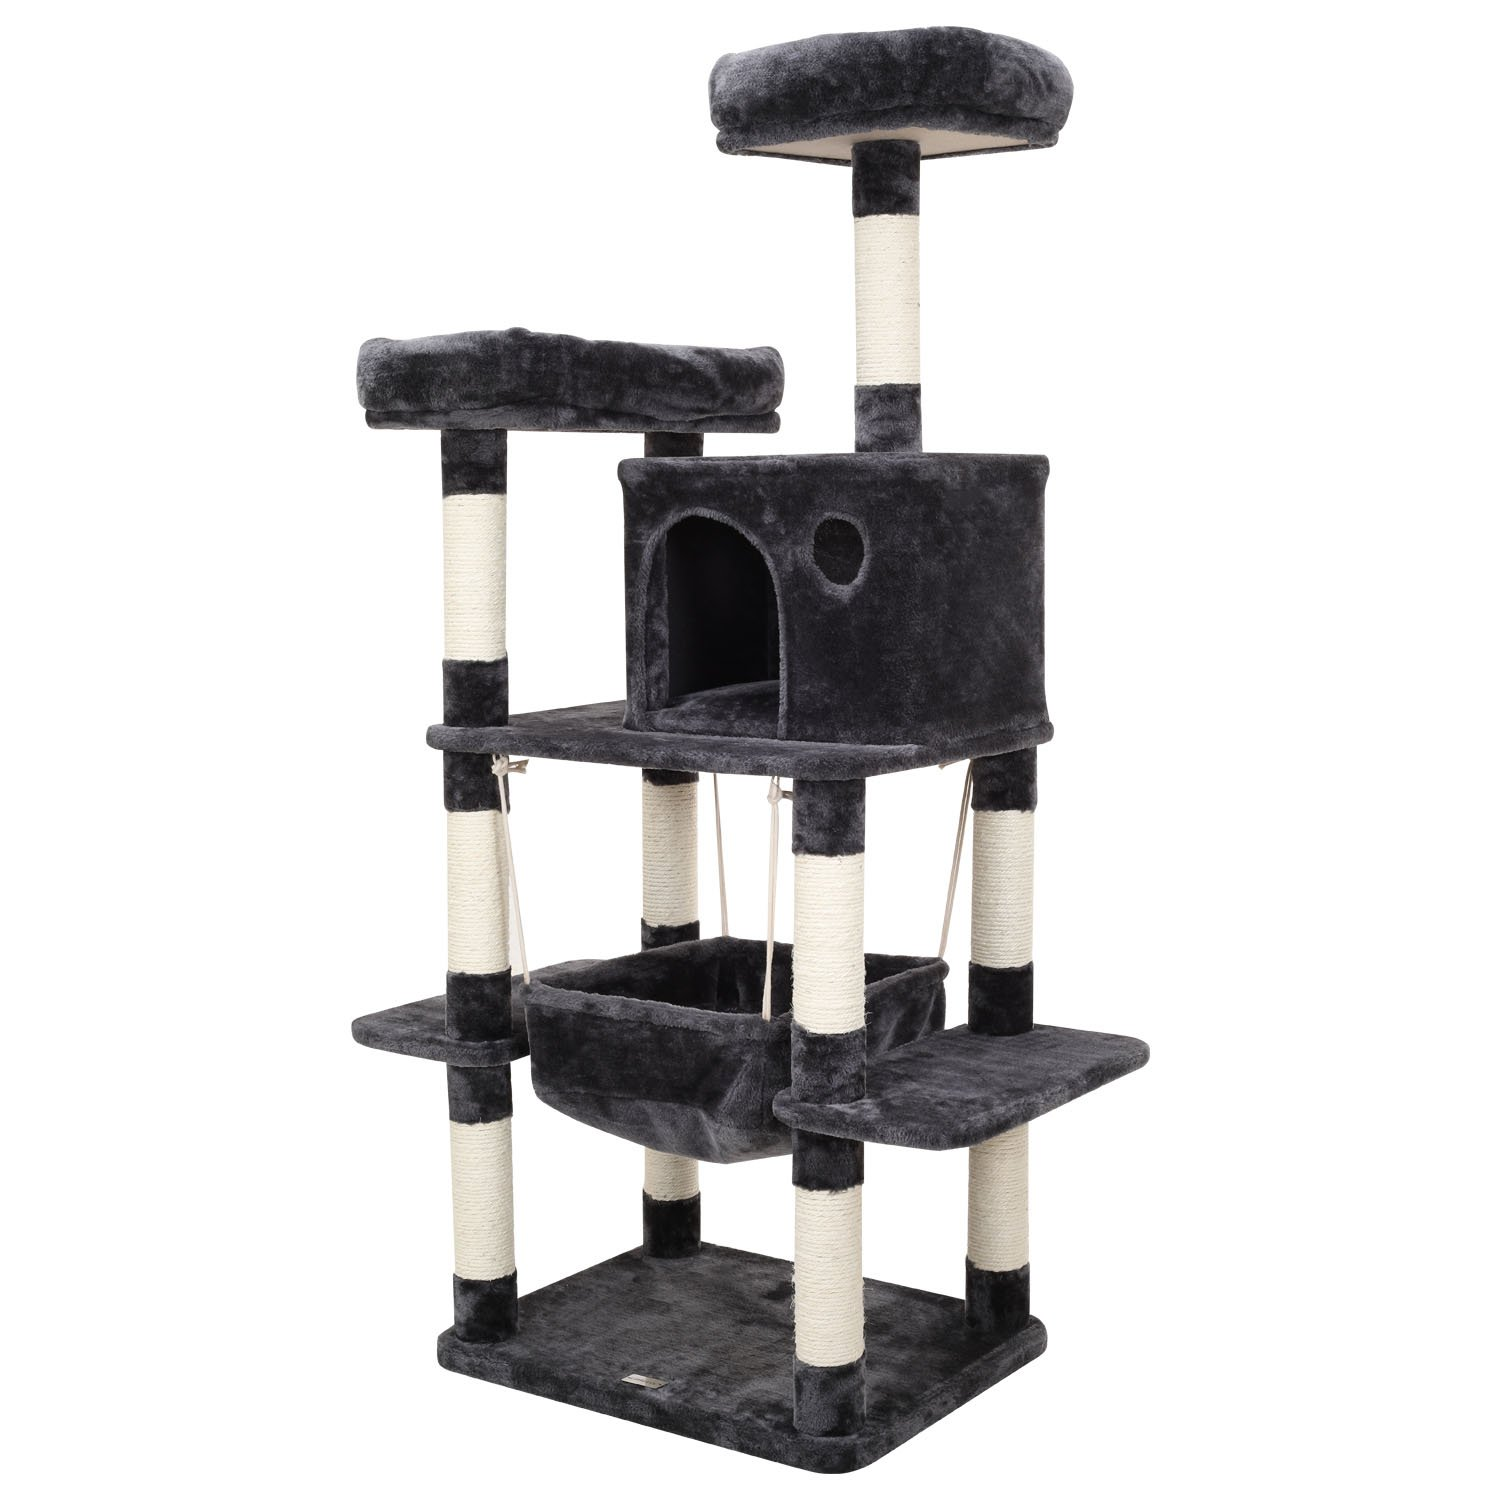 Ollieroo Cat Climbing Tree Tower Condo Scratcher Furniture Kitten House Hammock with Scratching Post and Top Soft Perches for Cats Kittens Playhouse Dark Gray